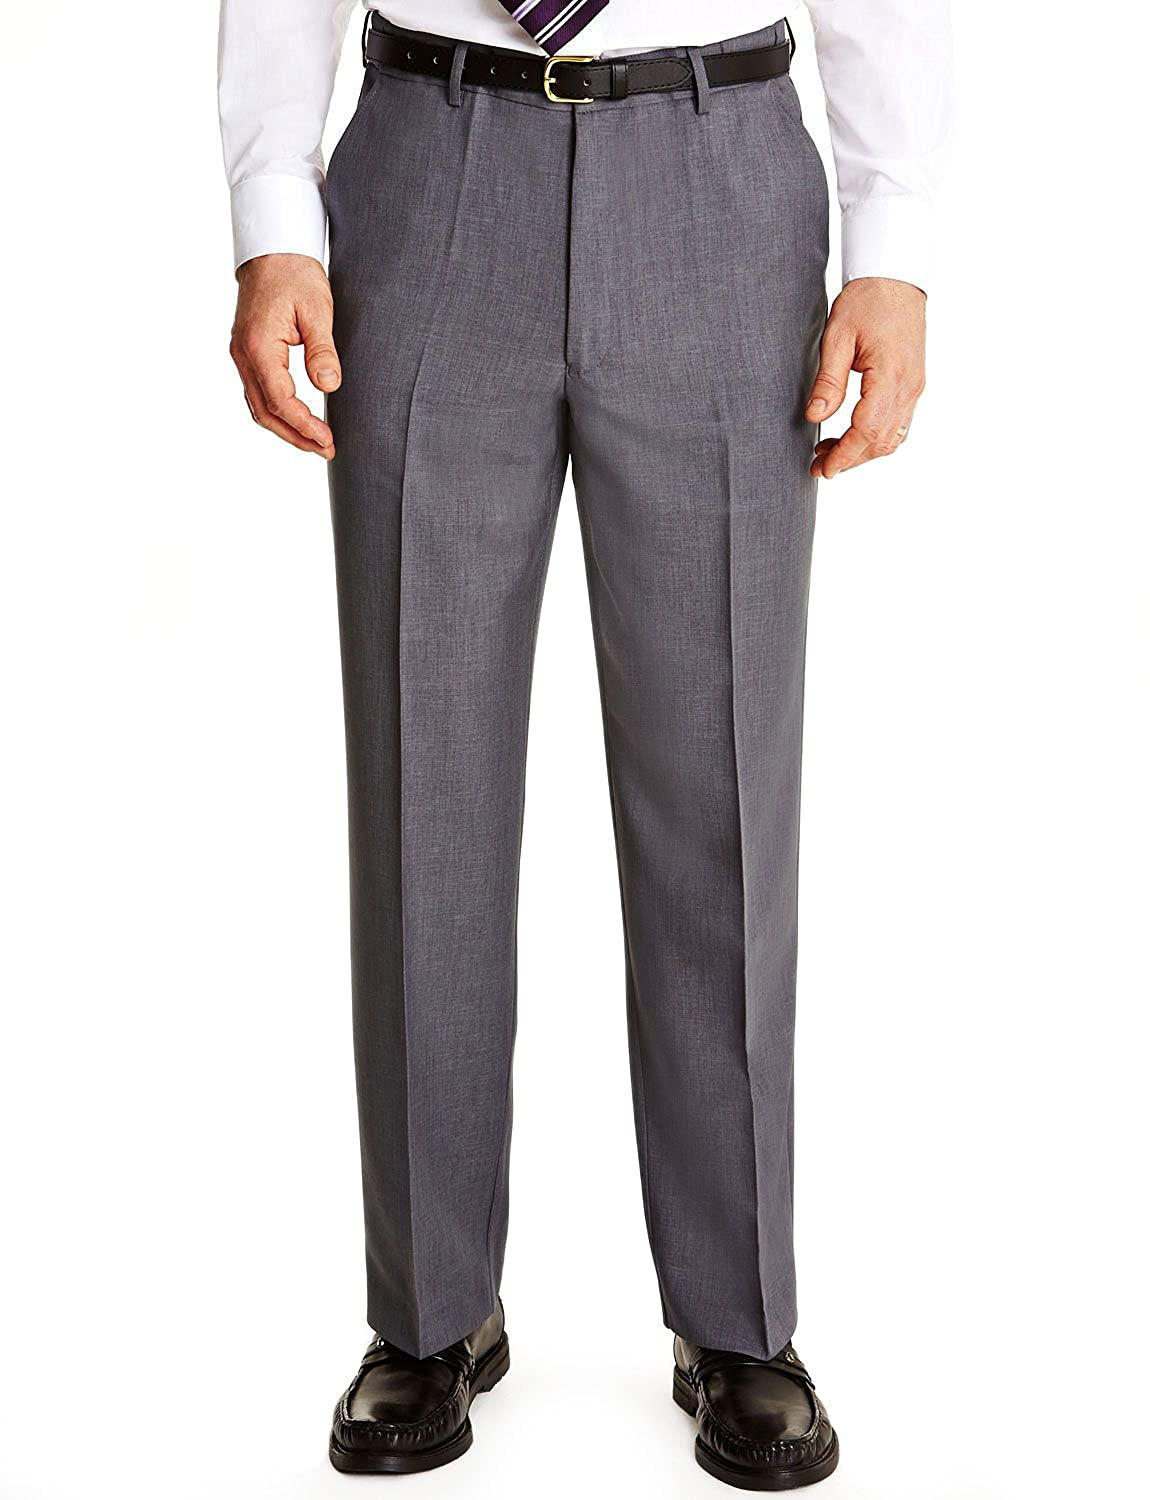 FARAH Mens Flex Trouser Pants with Self-Adjusting Waistband Grey 38W x 27L